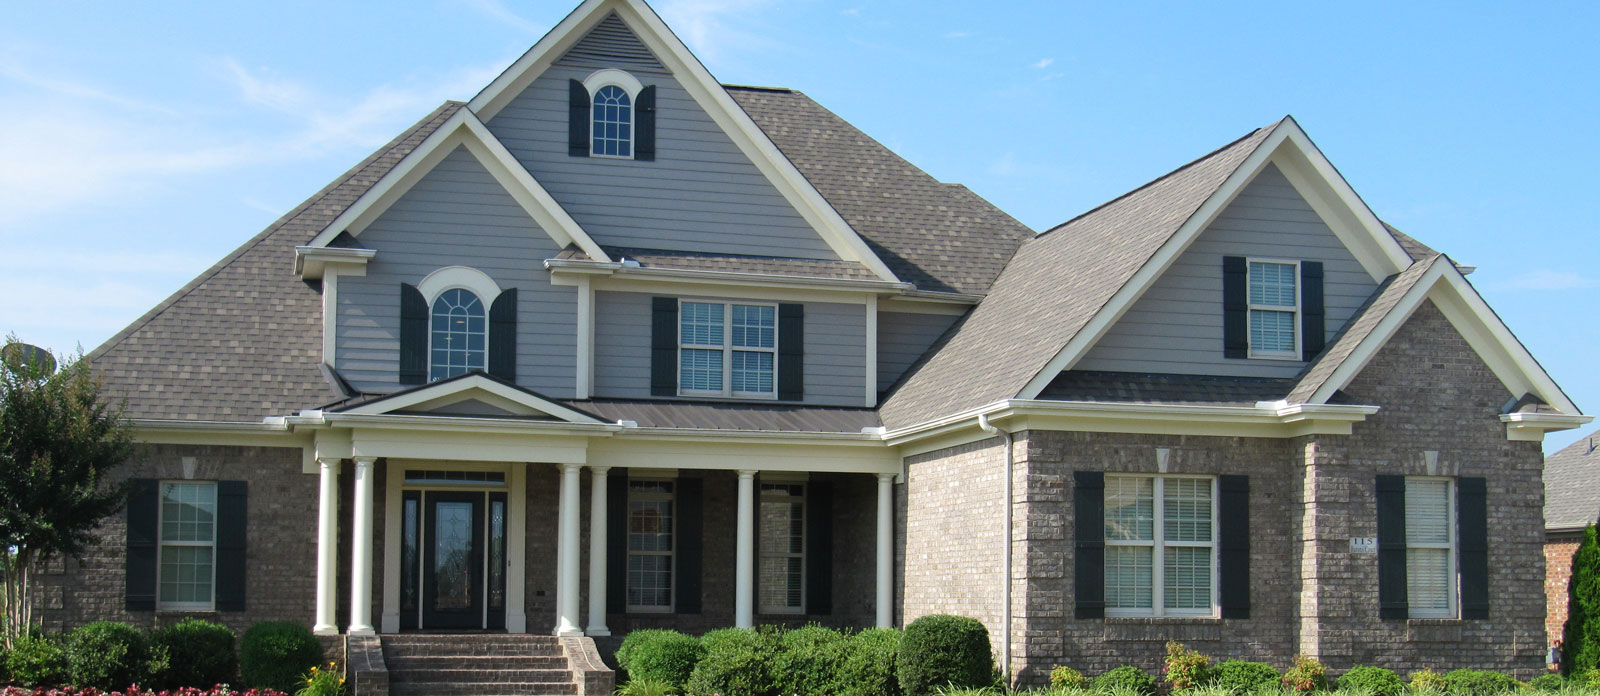 Bluestone custom home builder and custom home designs for Custom home builders in alabama